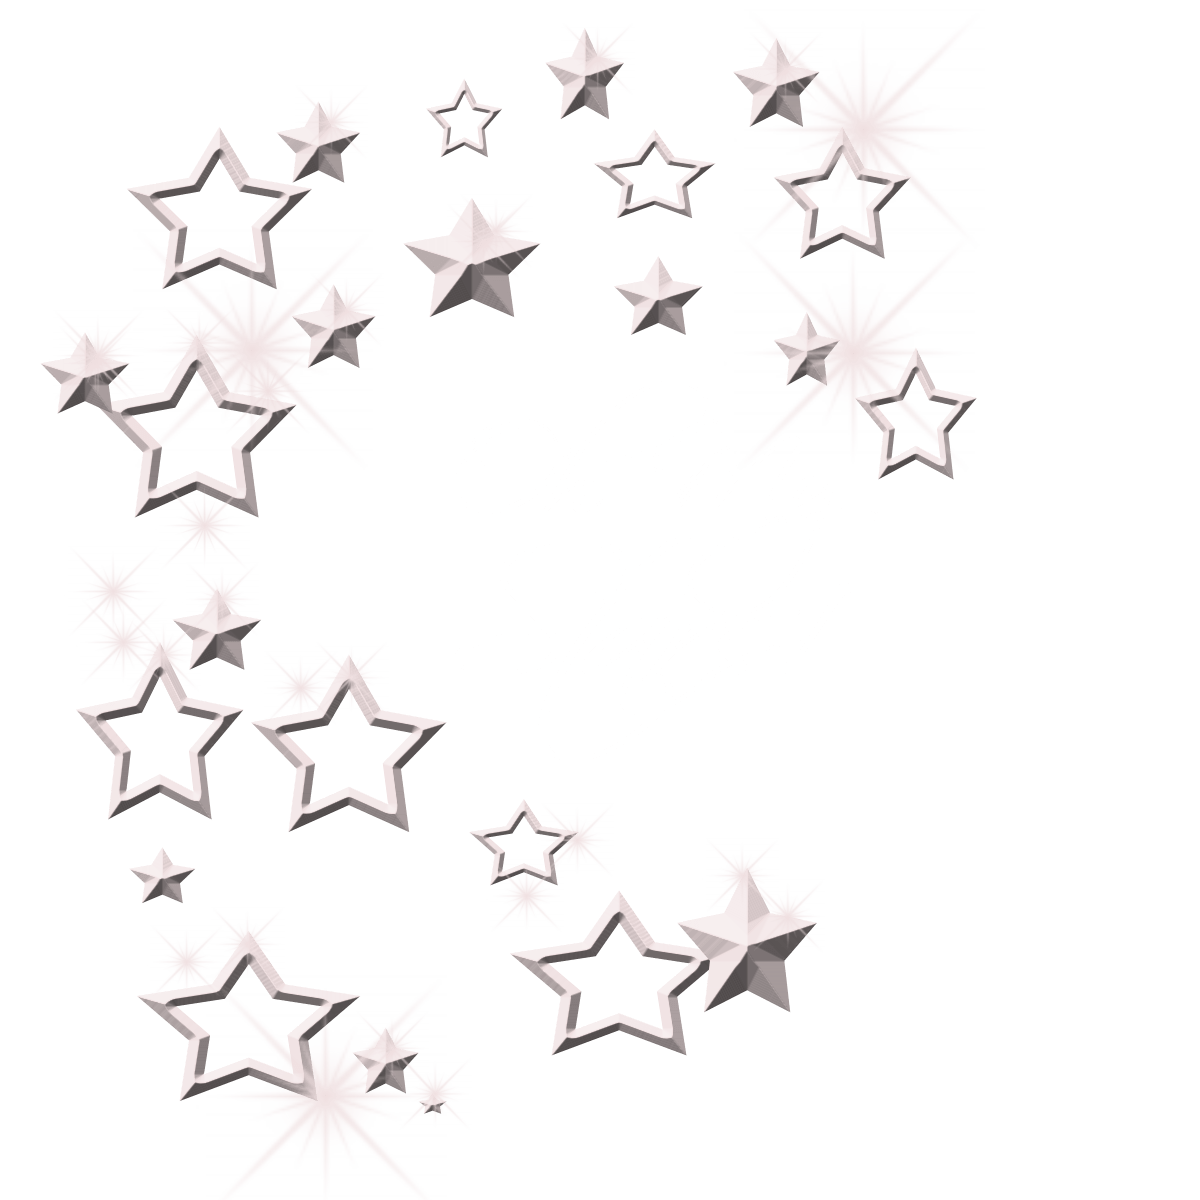 Free Stars Cliparts Download Free Clip Art Free Clip Art On Clipart Library